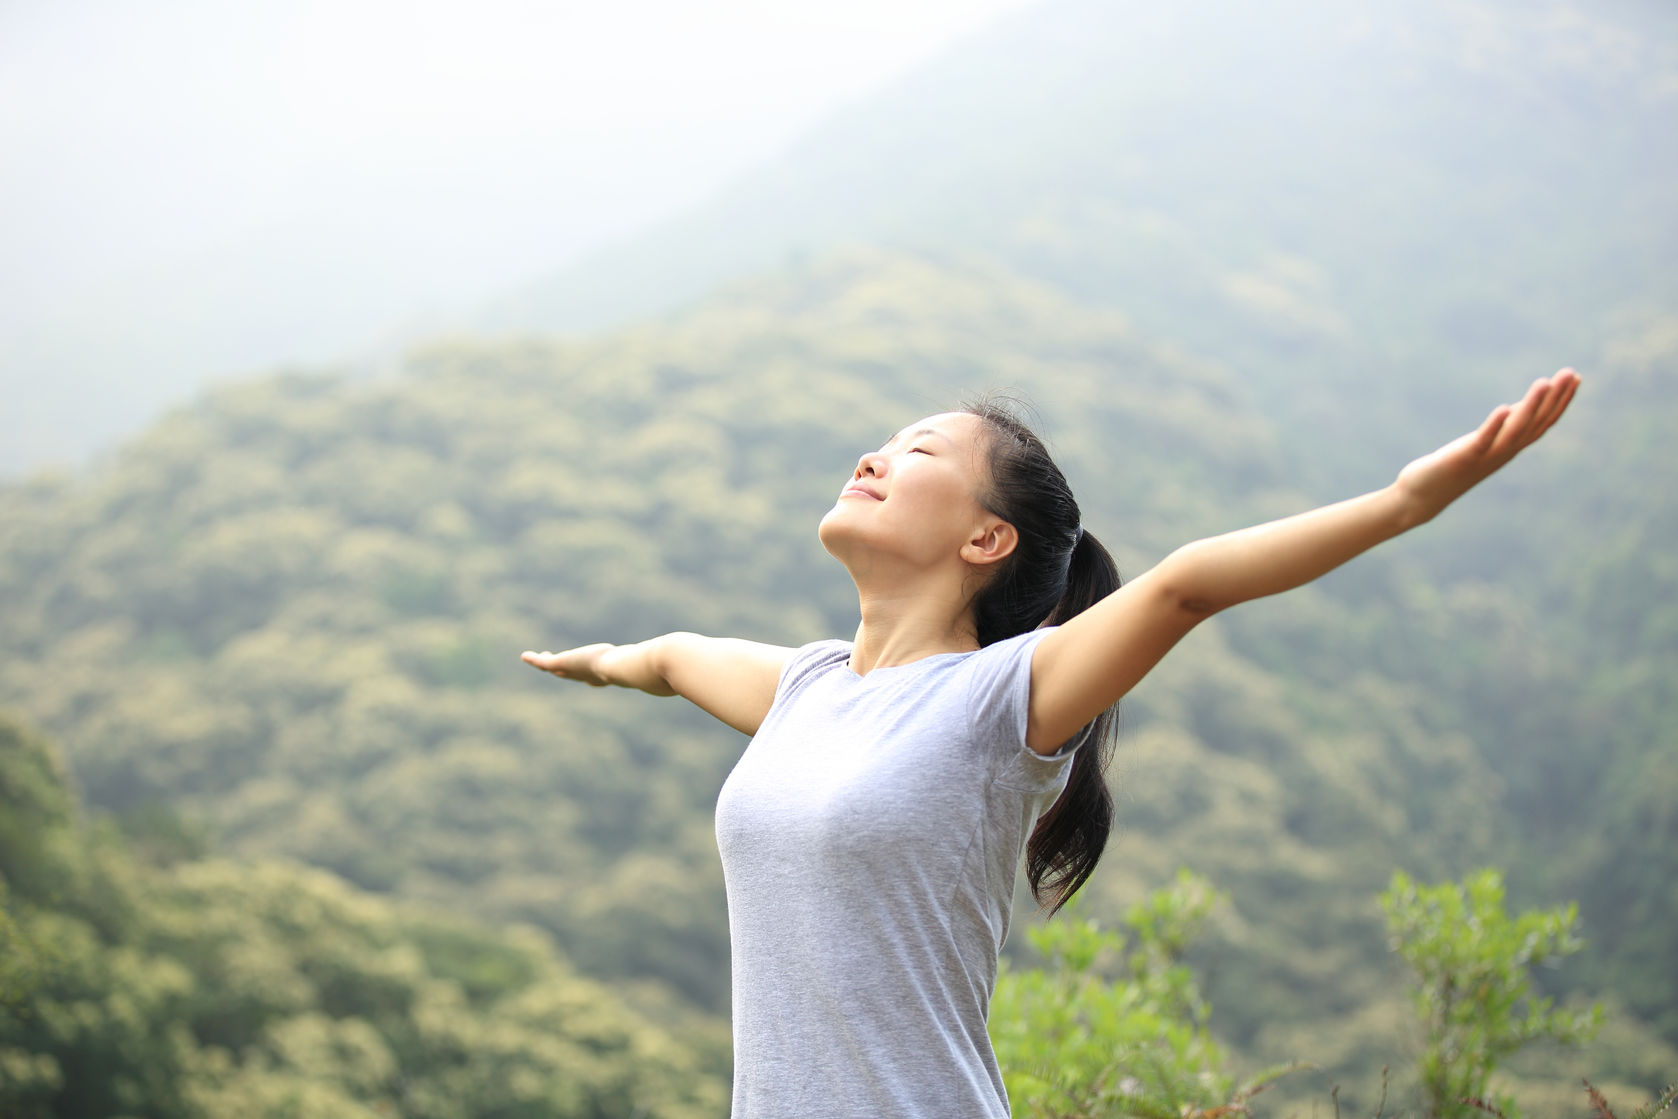 If You Want To Be Happier, Start Exercising